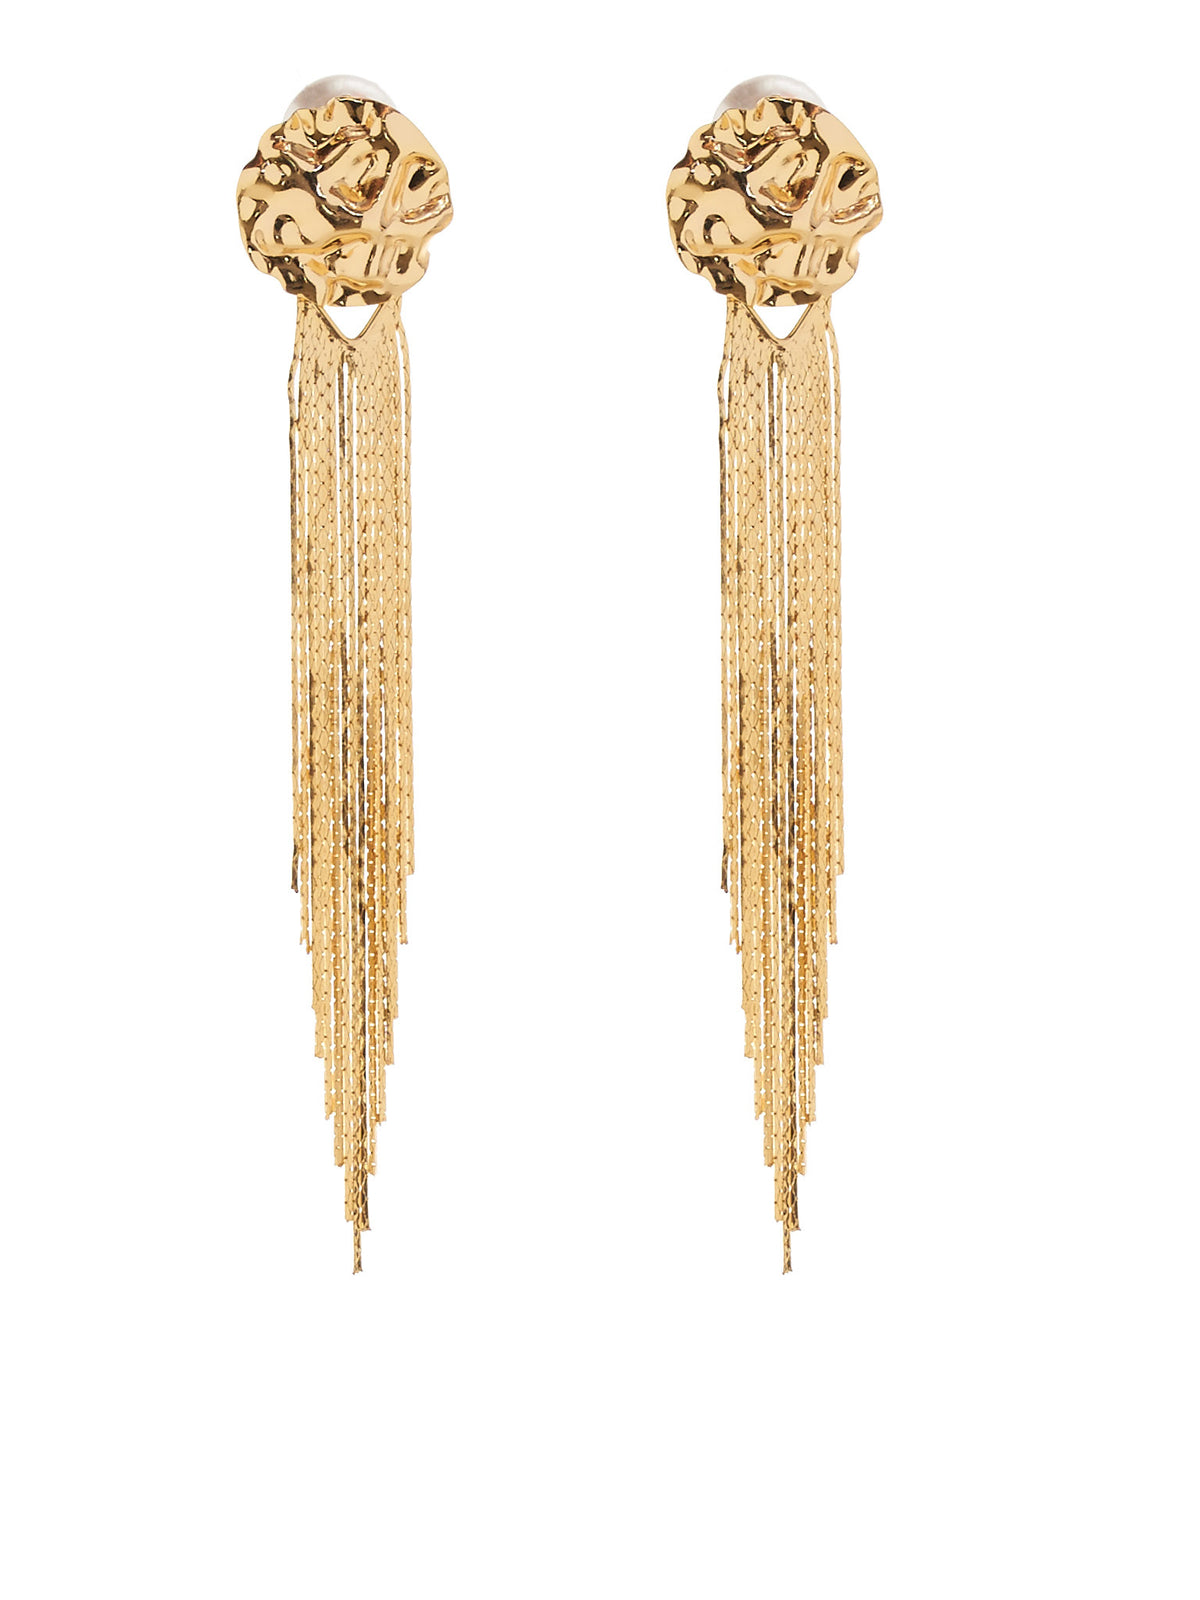 Meduse Earrings (808-G008-078-GOLD)